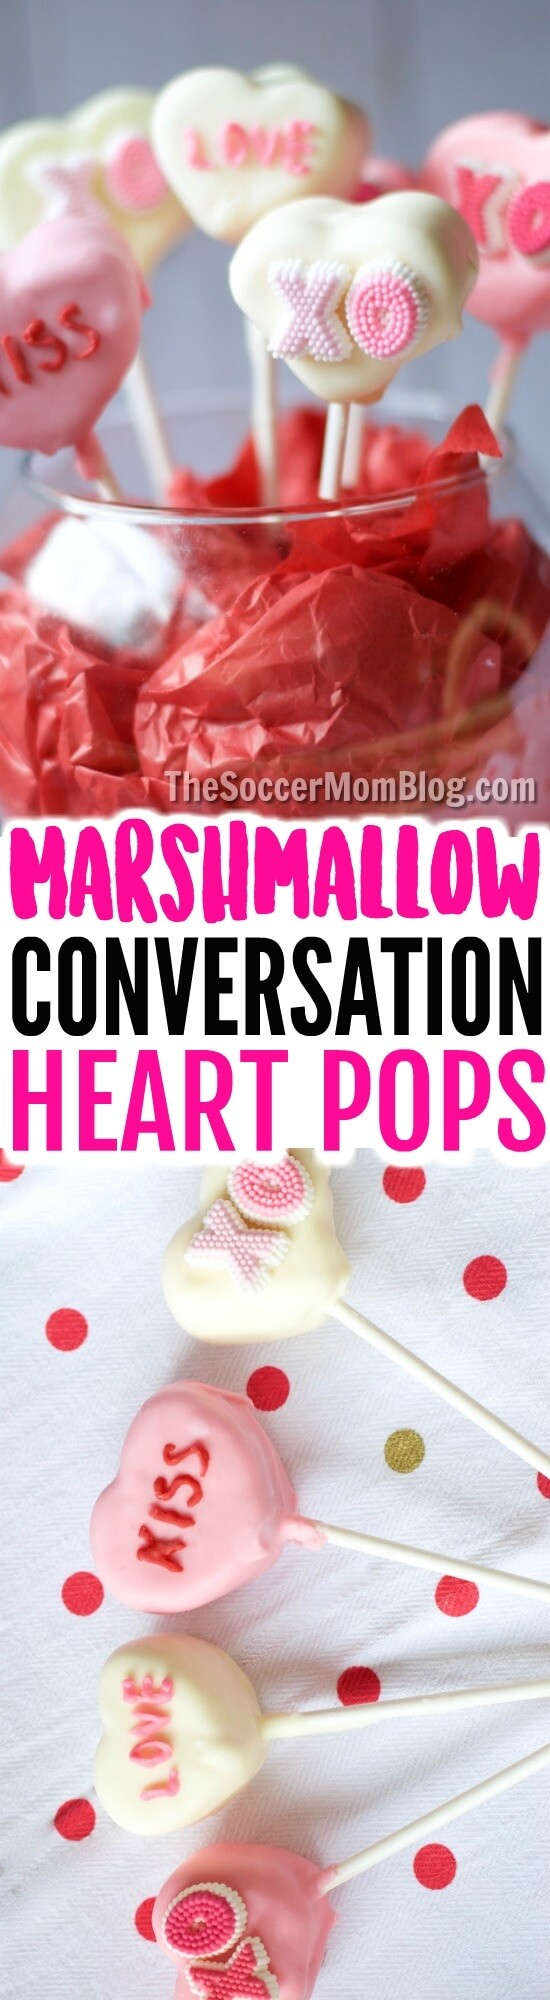 Chocolate-dipped Conversation Heart Marshmallow Pops are easy enough for kids to make and absolutely adorable Valentine's Day gifts!